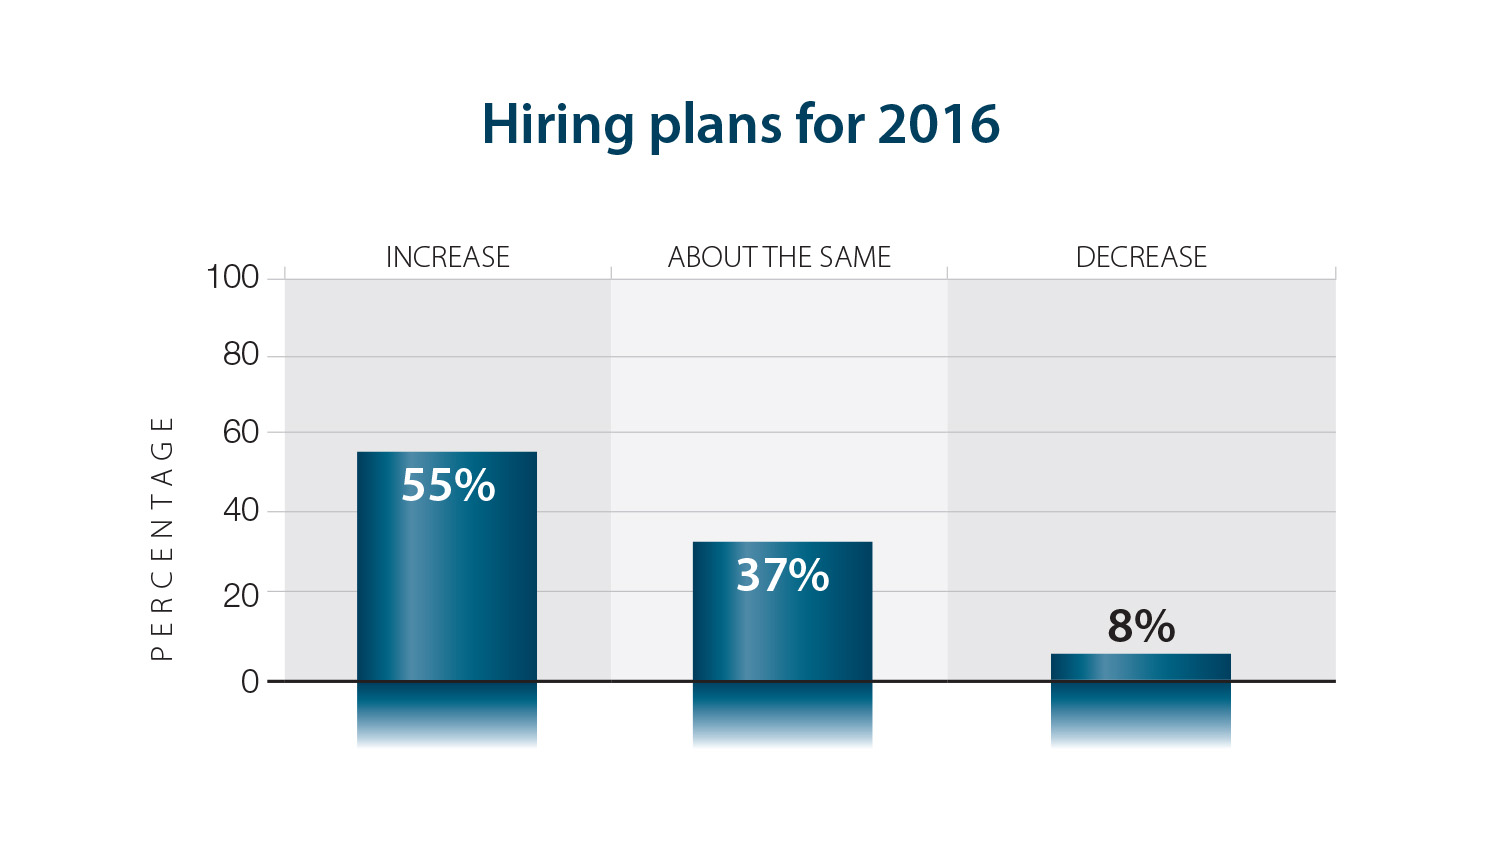 CEO hiring plans for 2016